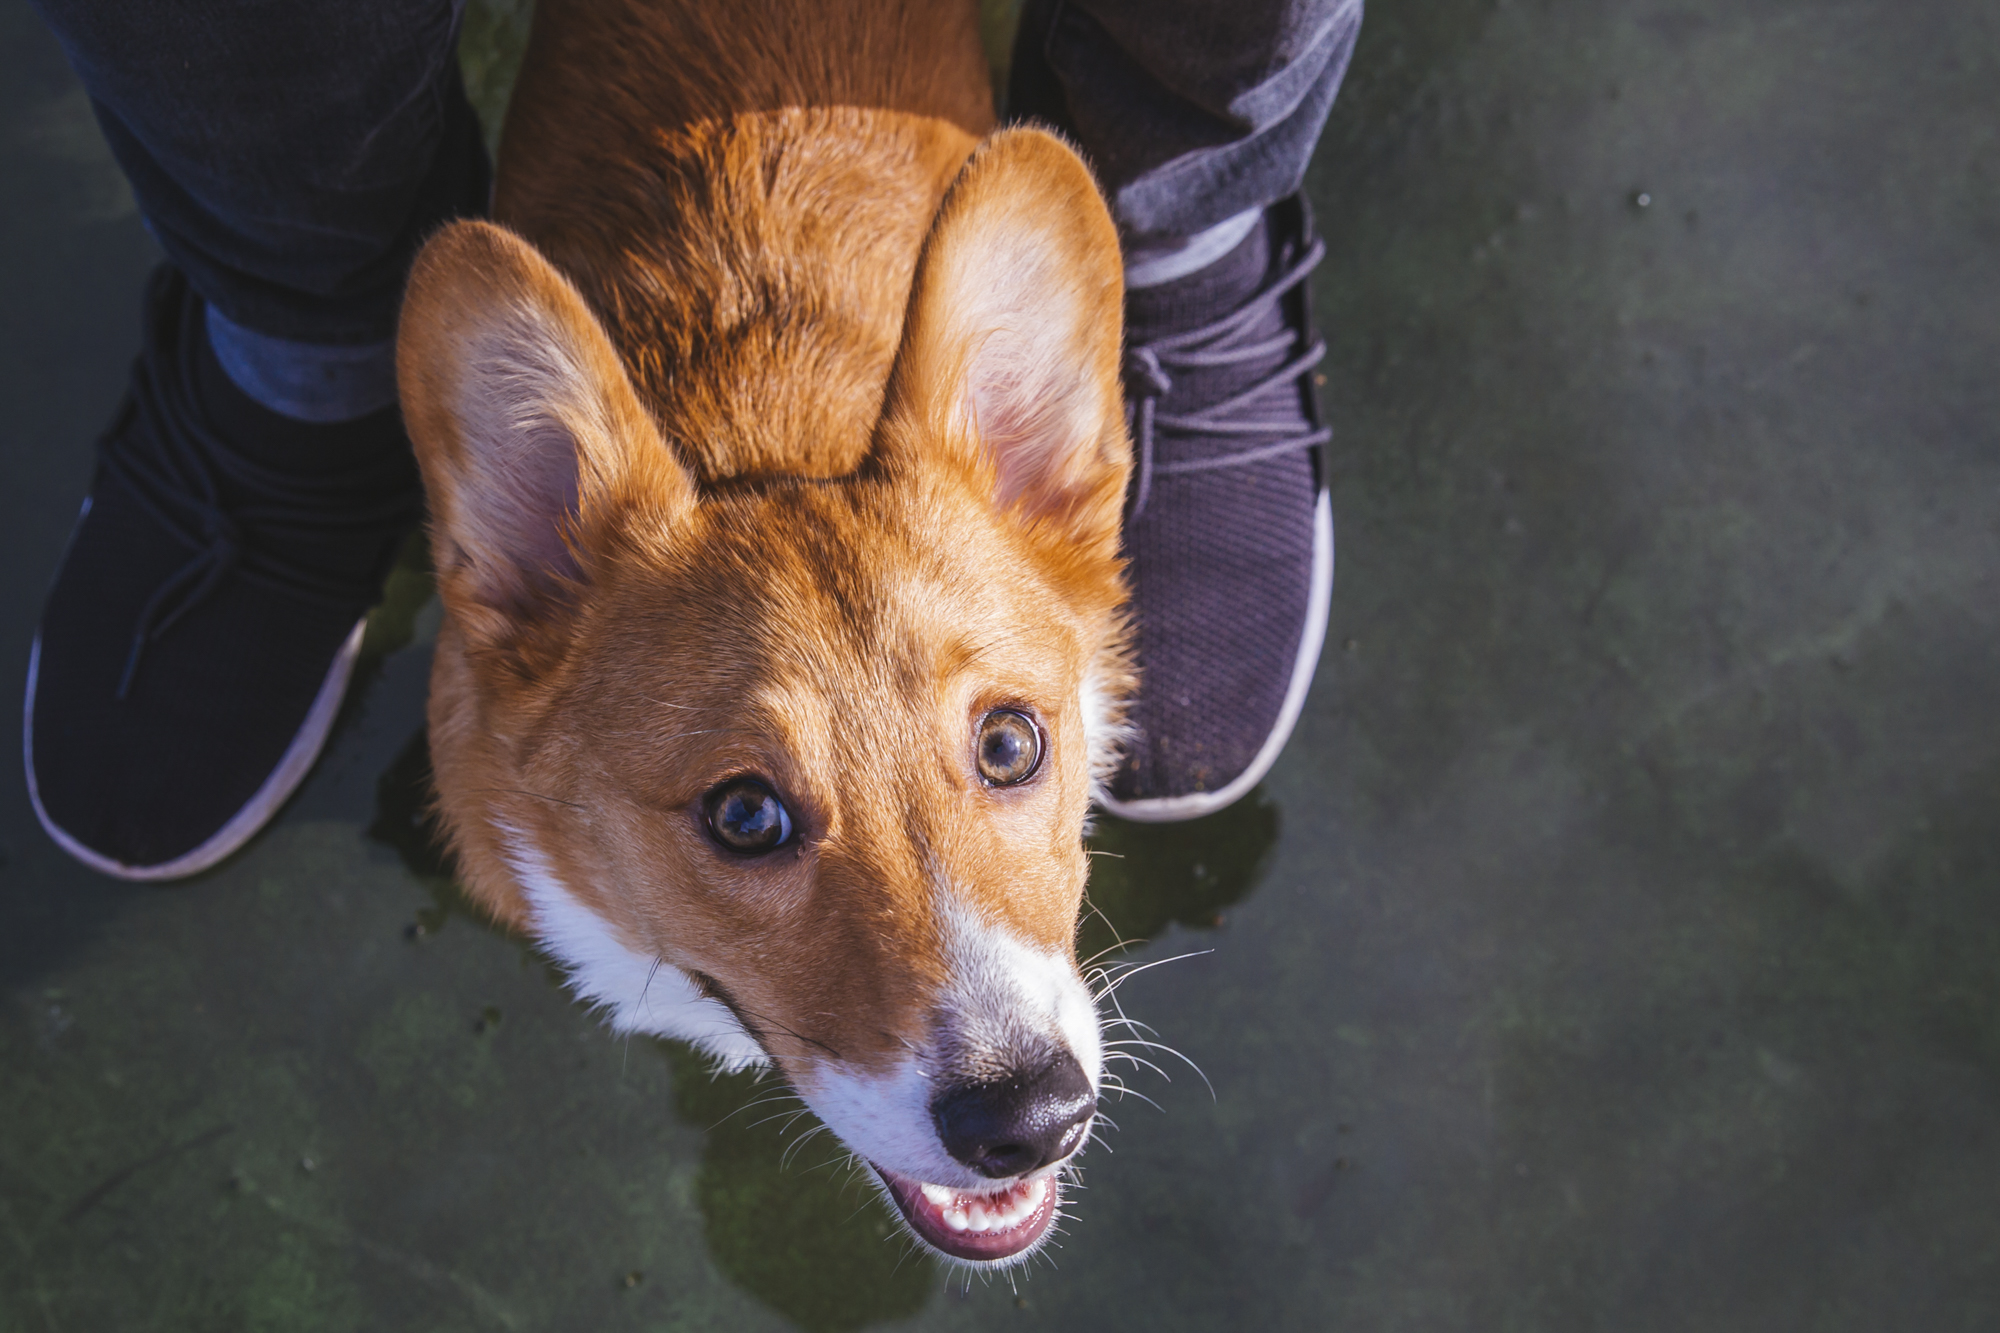 Meet Floyd the six month old Pembroke Welsh Corgi! Floyd likes snuggles, food and dogs. He dislike sirens, dogs on the TV, and rain! You can follow Floyd's journey through life on his Instagram page @floyd_corgi.{ }The Seattle RUFFined Spotlight is a weekly profile of local pets living and loving life in the PNW. If you or someone you know has a pet you'd like featured, email us at hello@seattlerefined.com or tag #SeattleRUFFined and your furbaby could be the next spotlighted! (Image: Sunita Martini / Seattle Refined).